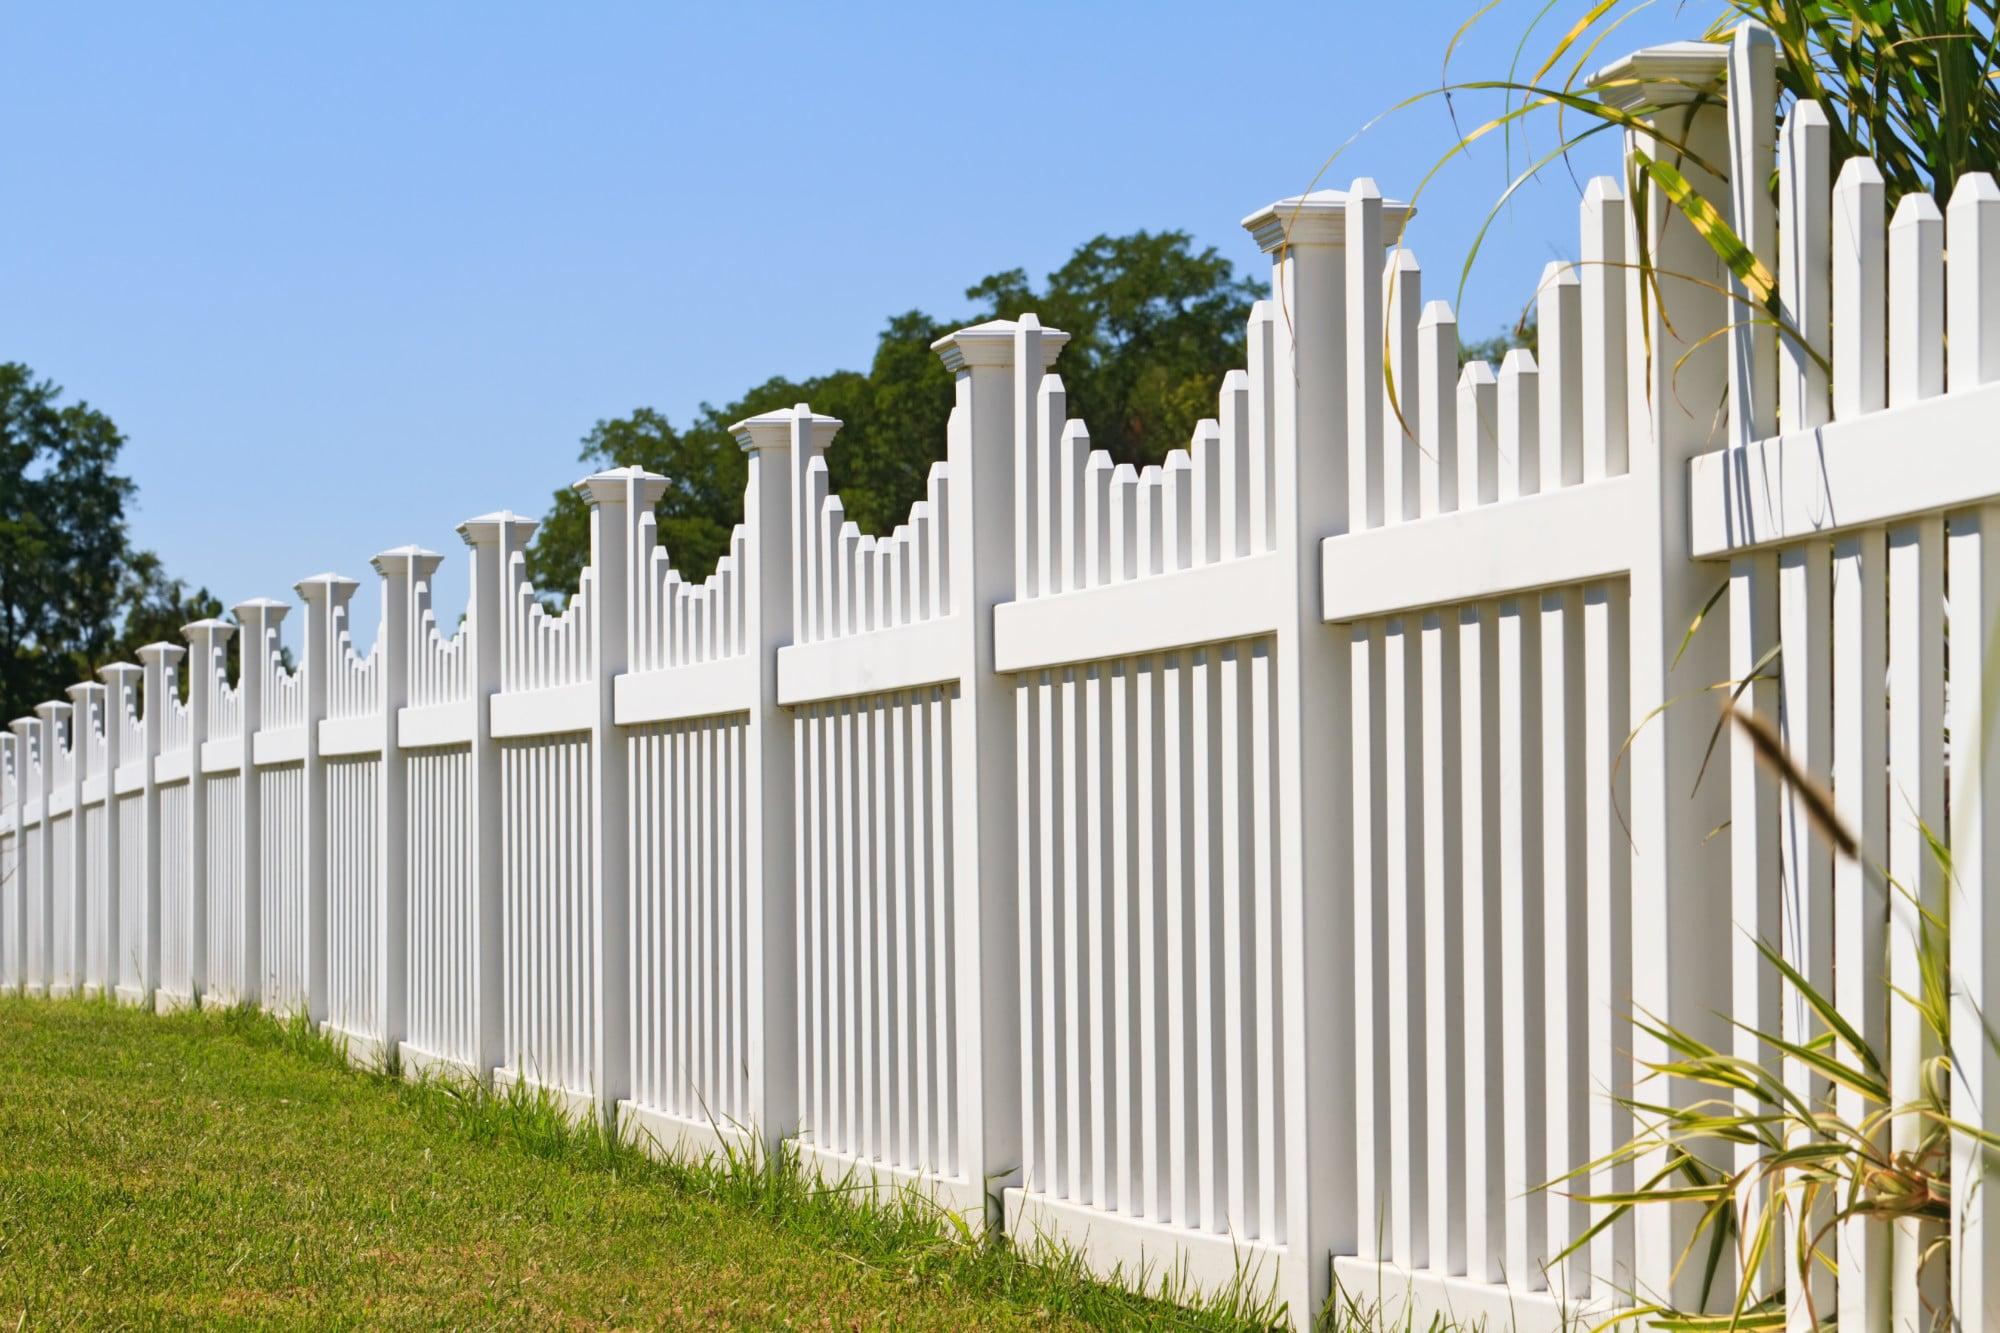 How to Start a Fencing Business: The Complete Guide